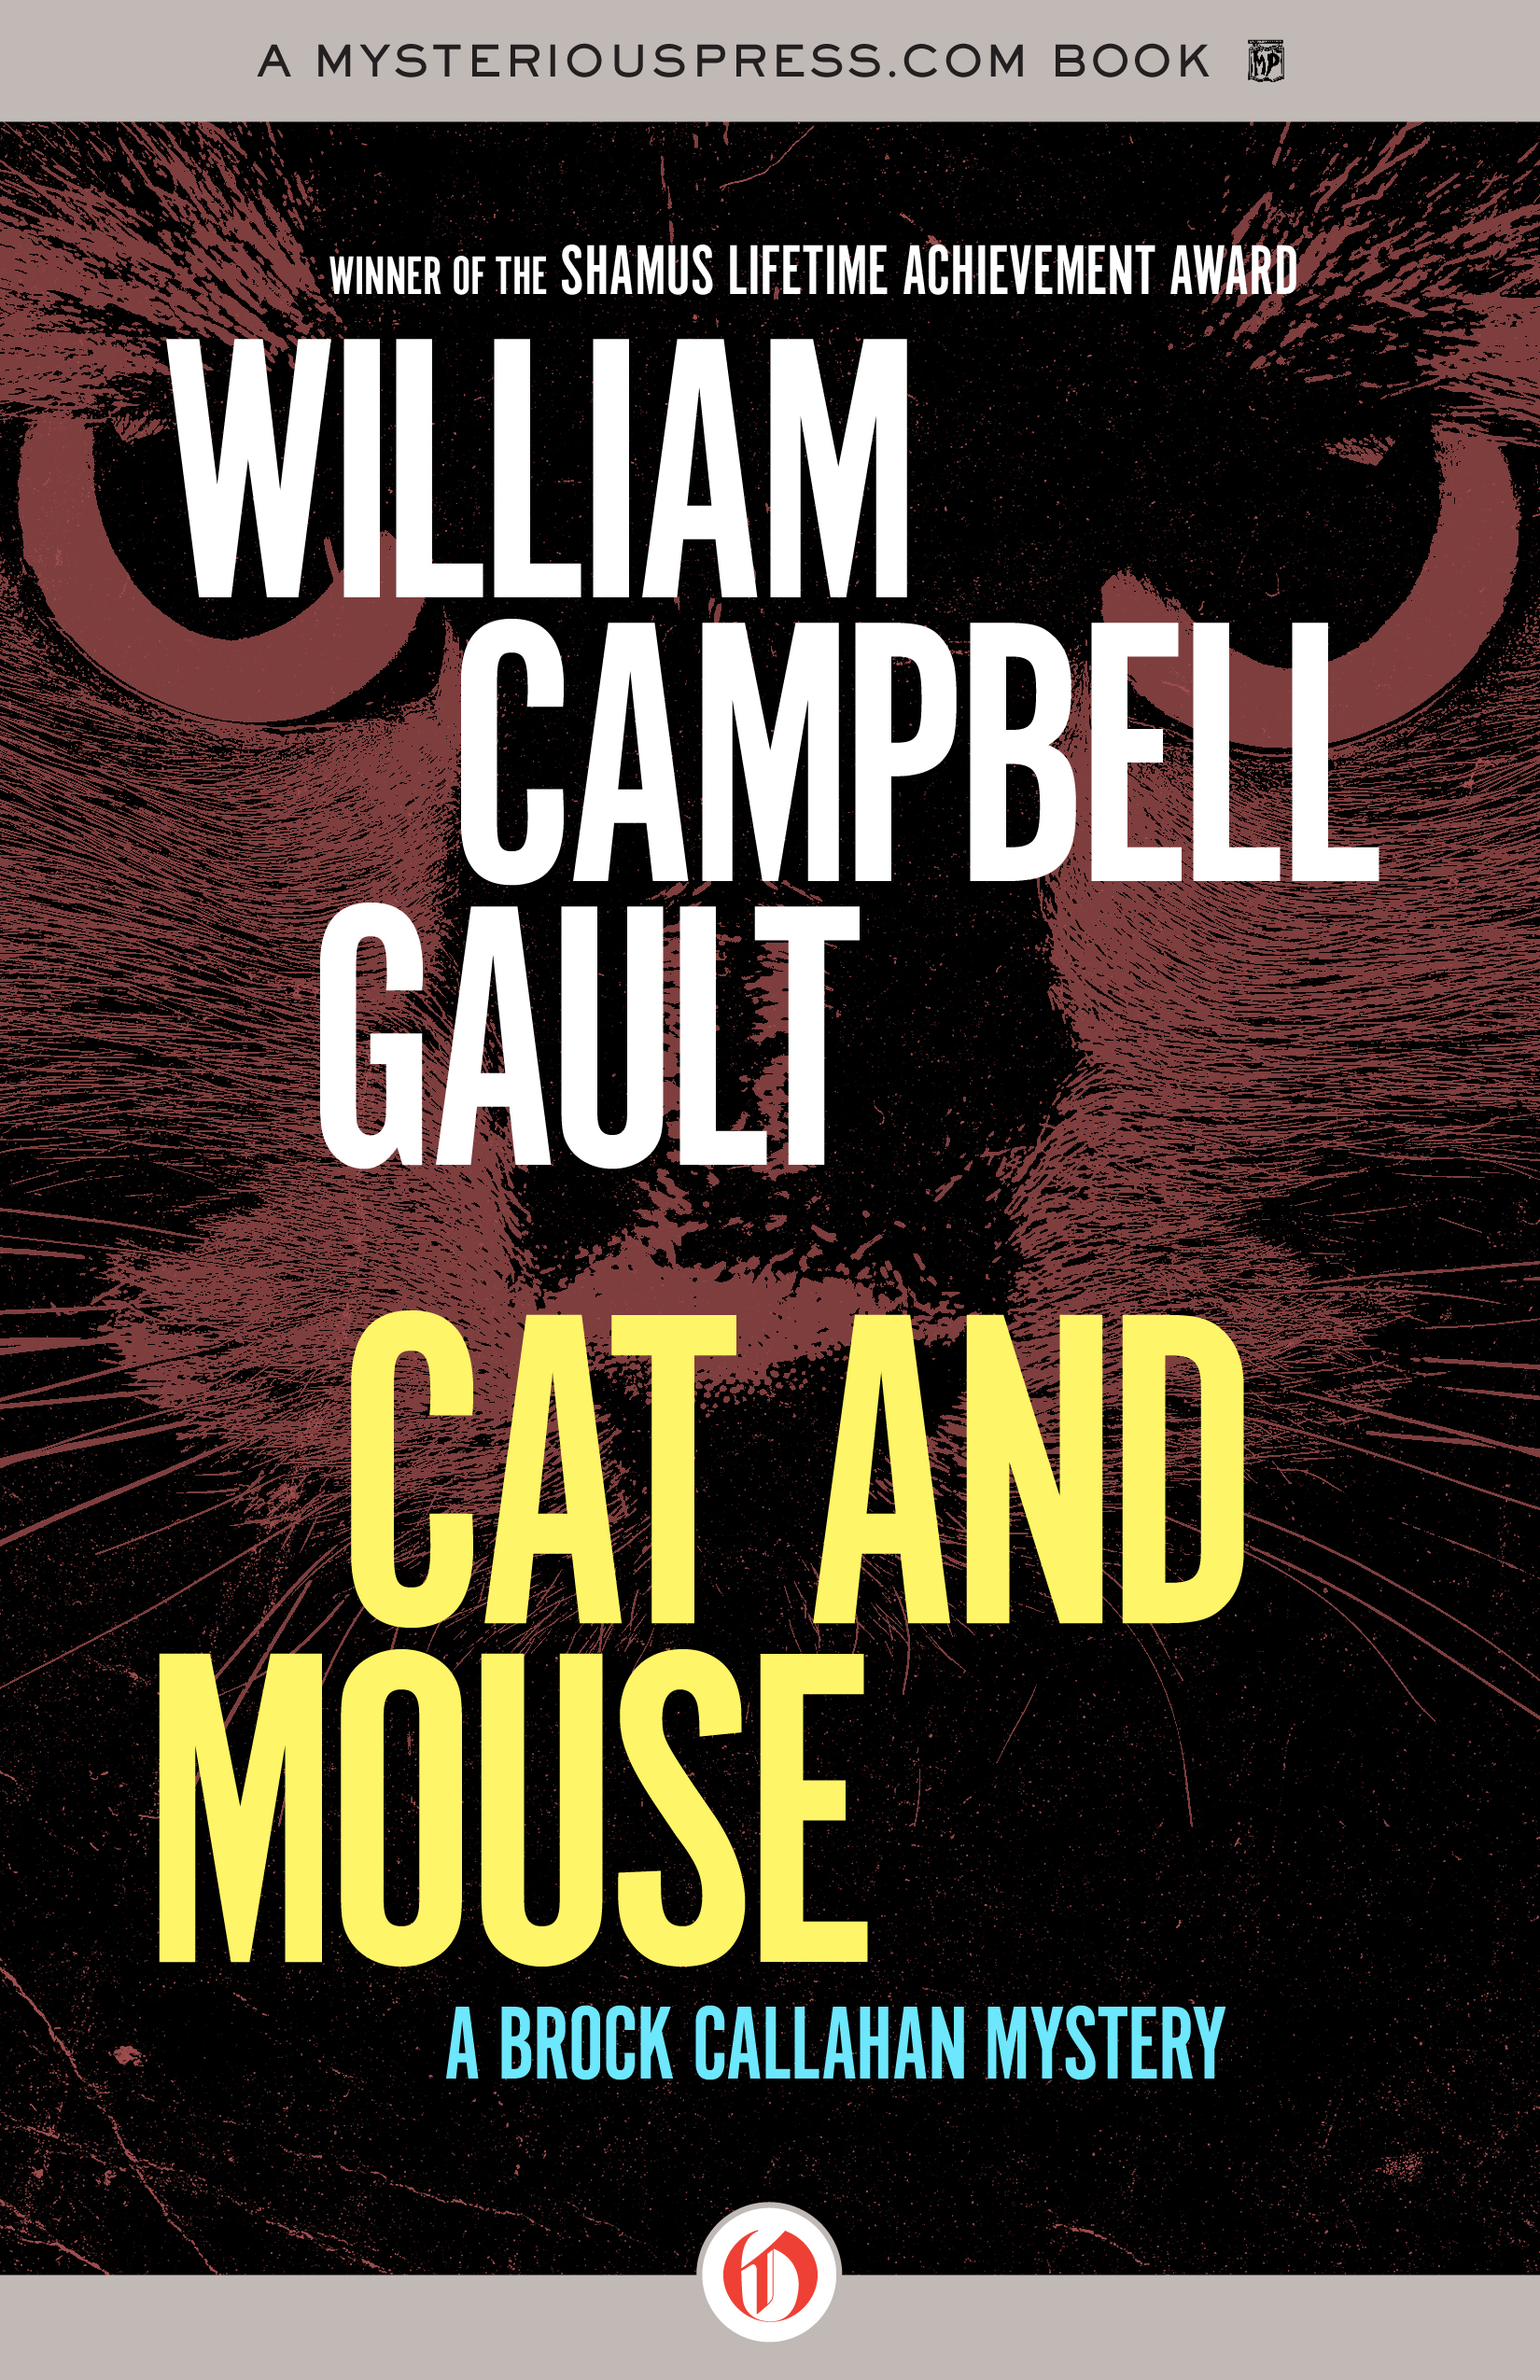 Cat and Mouse: A Brock Callahan Mystery